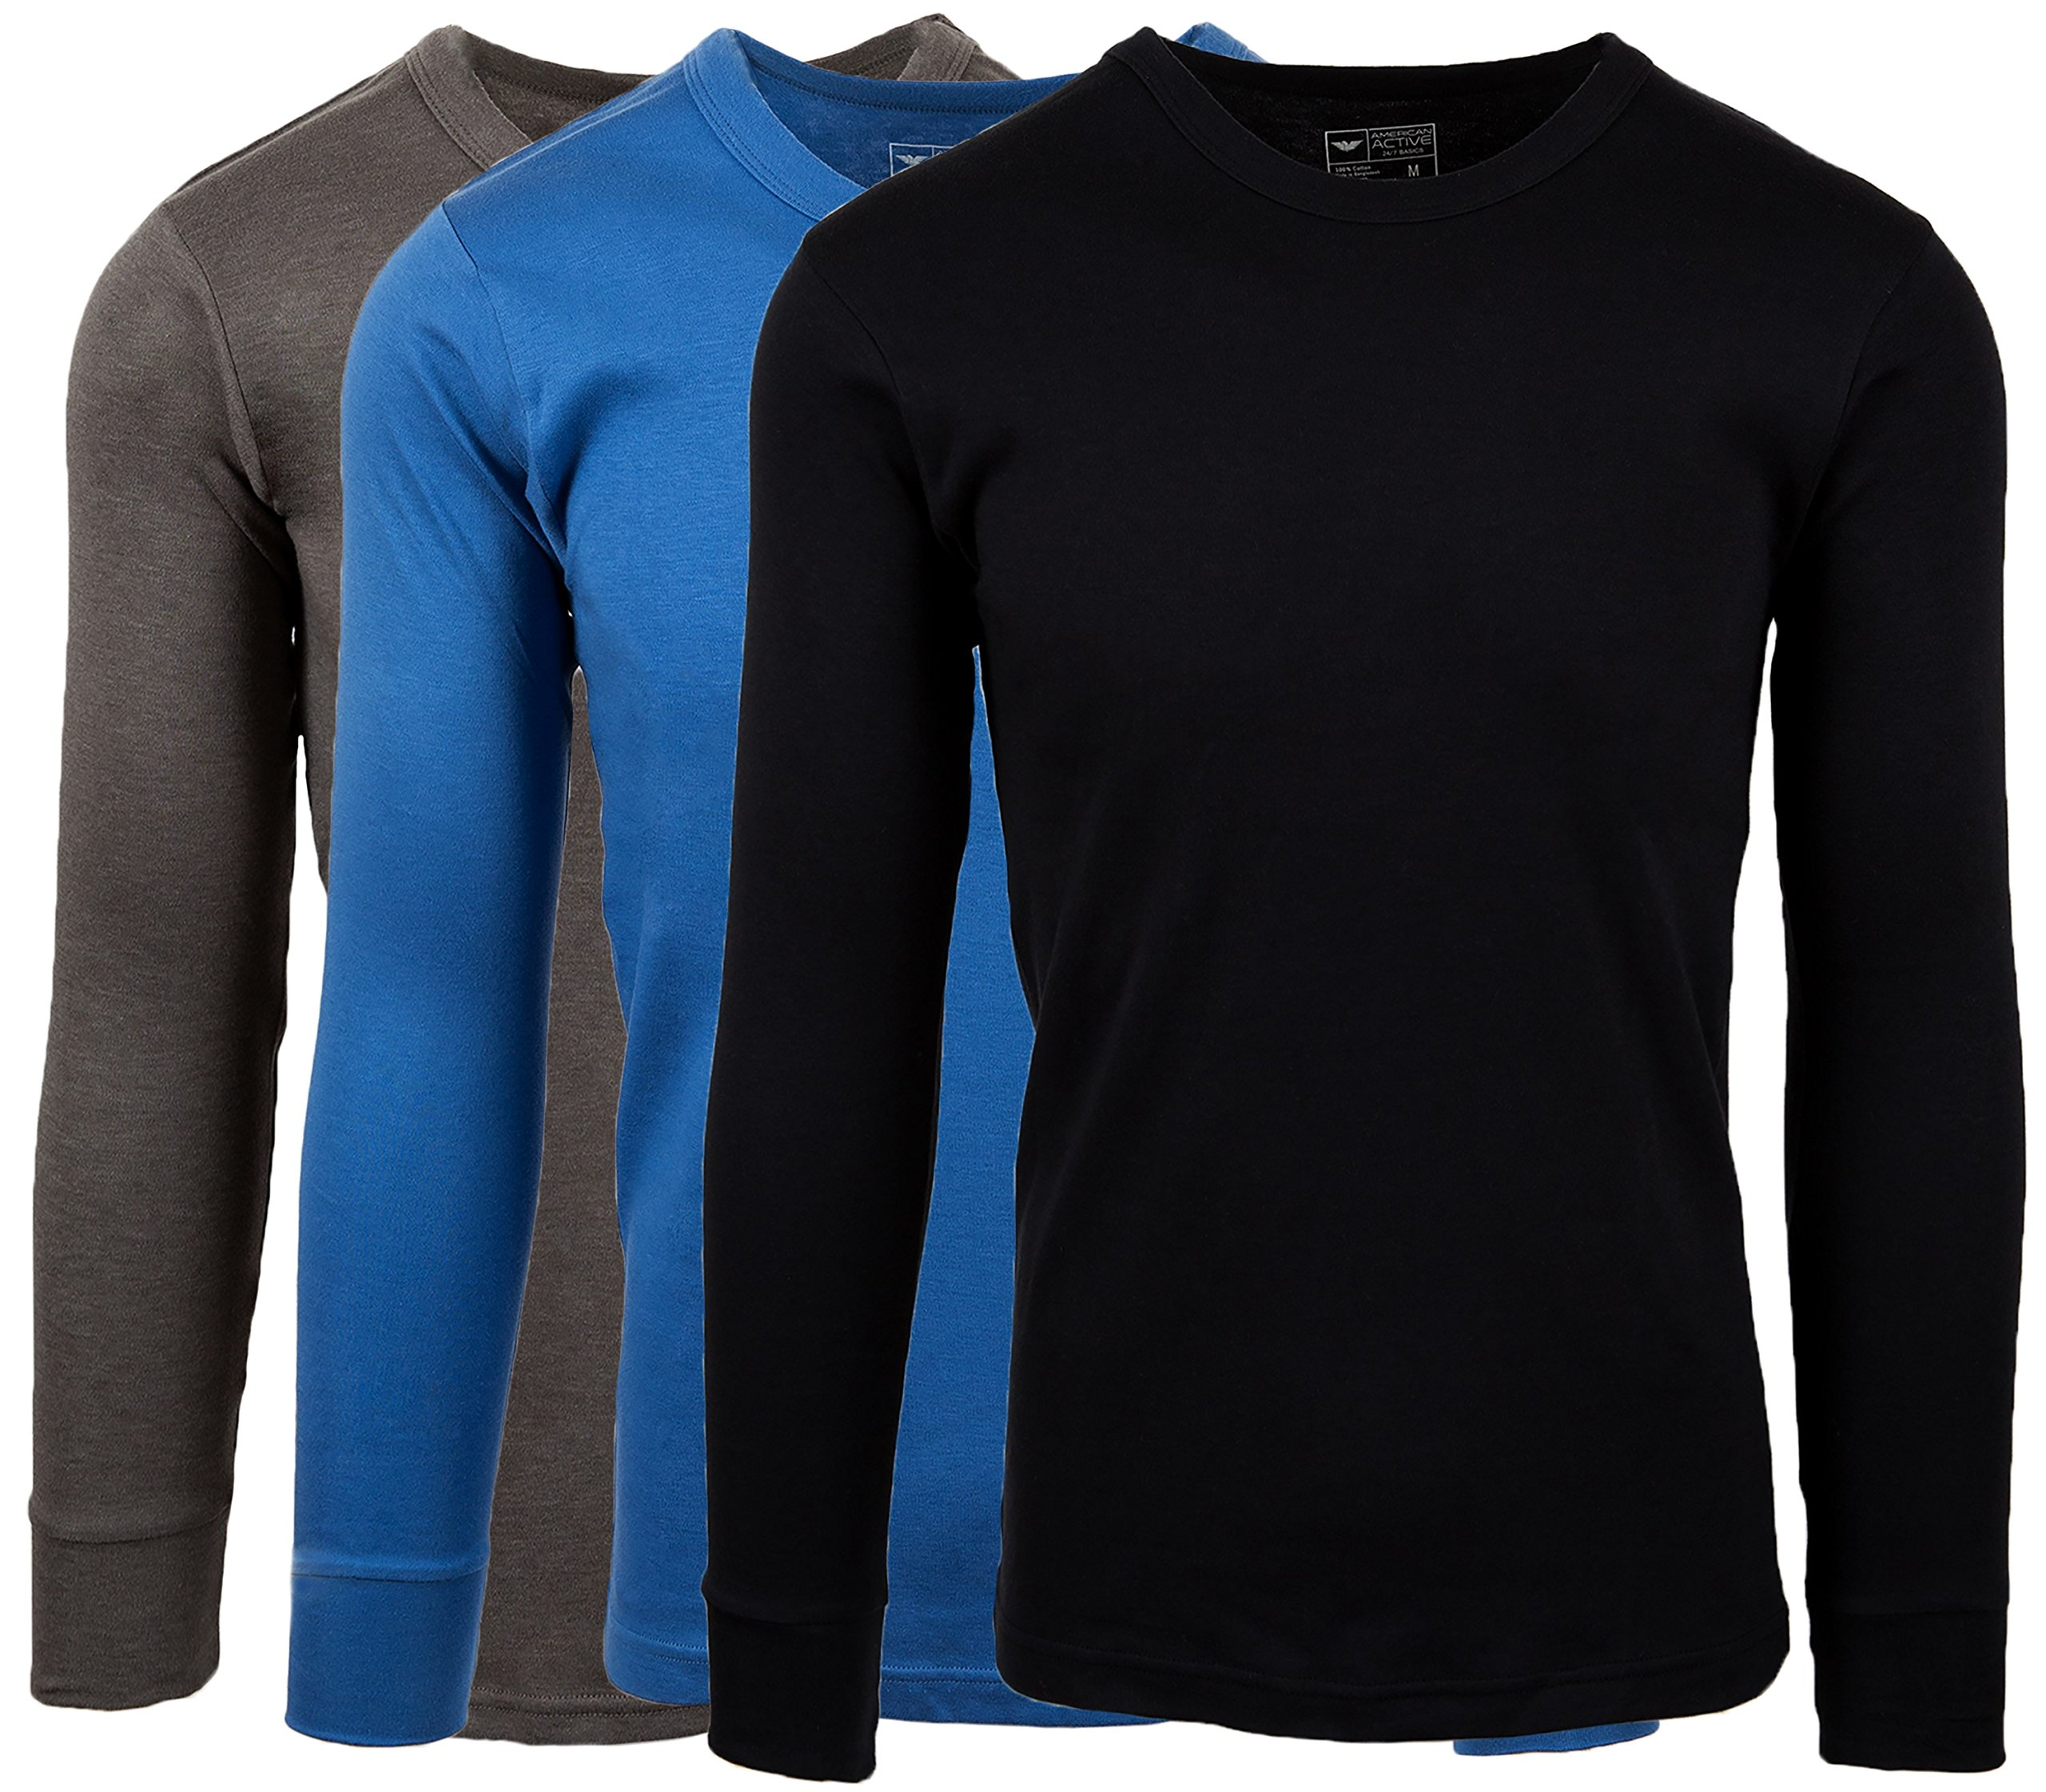 AMERICAN ACTIVE Men's 3 Pack 100% Cotton Fleece Lined Base Layer Long Sleeve Thermal Crew Neck Shirt (3 Pack-Denim/Charcoal/Black, XX-Large) by AMERICAN ACTIVE